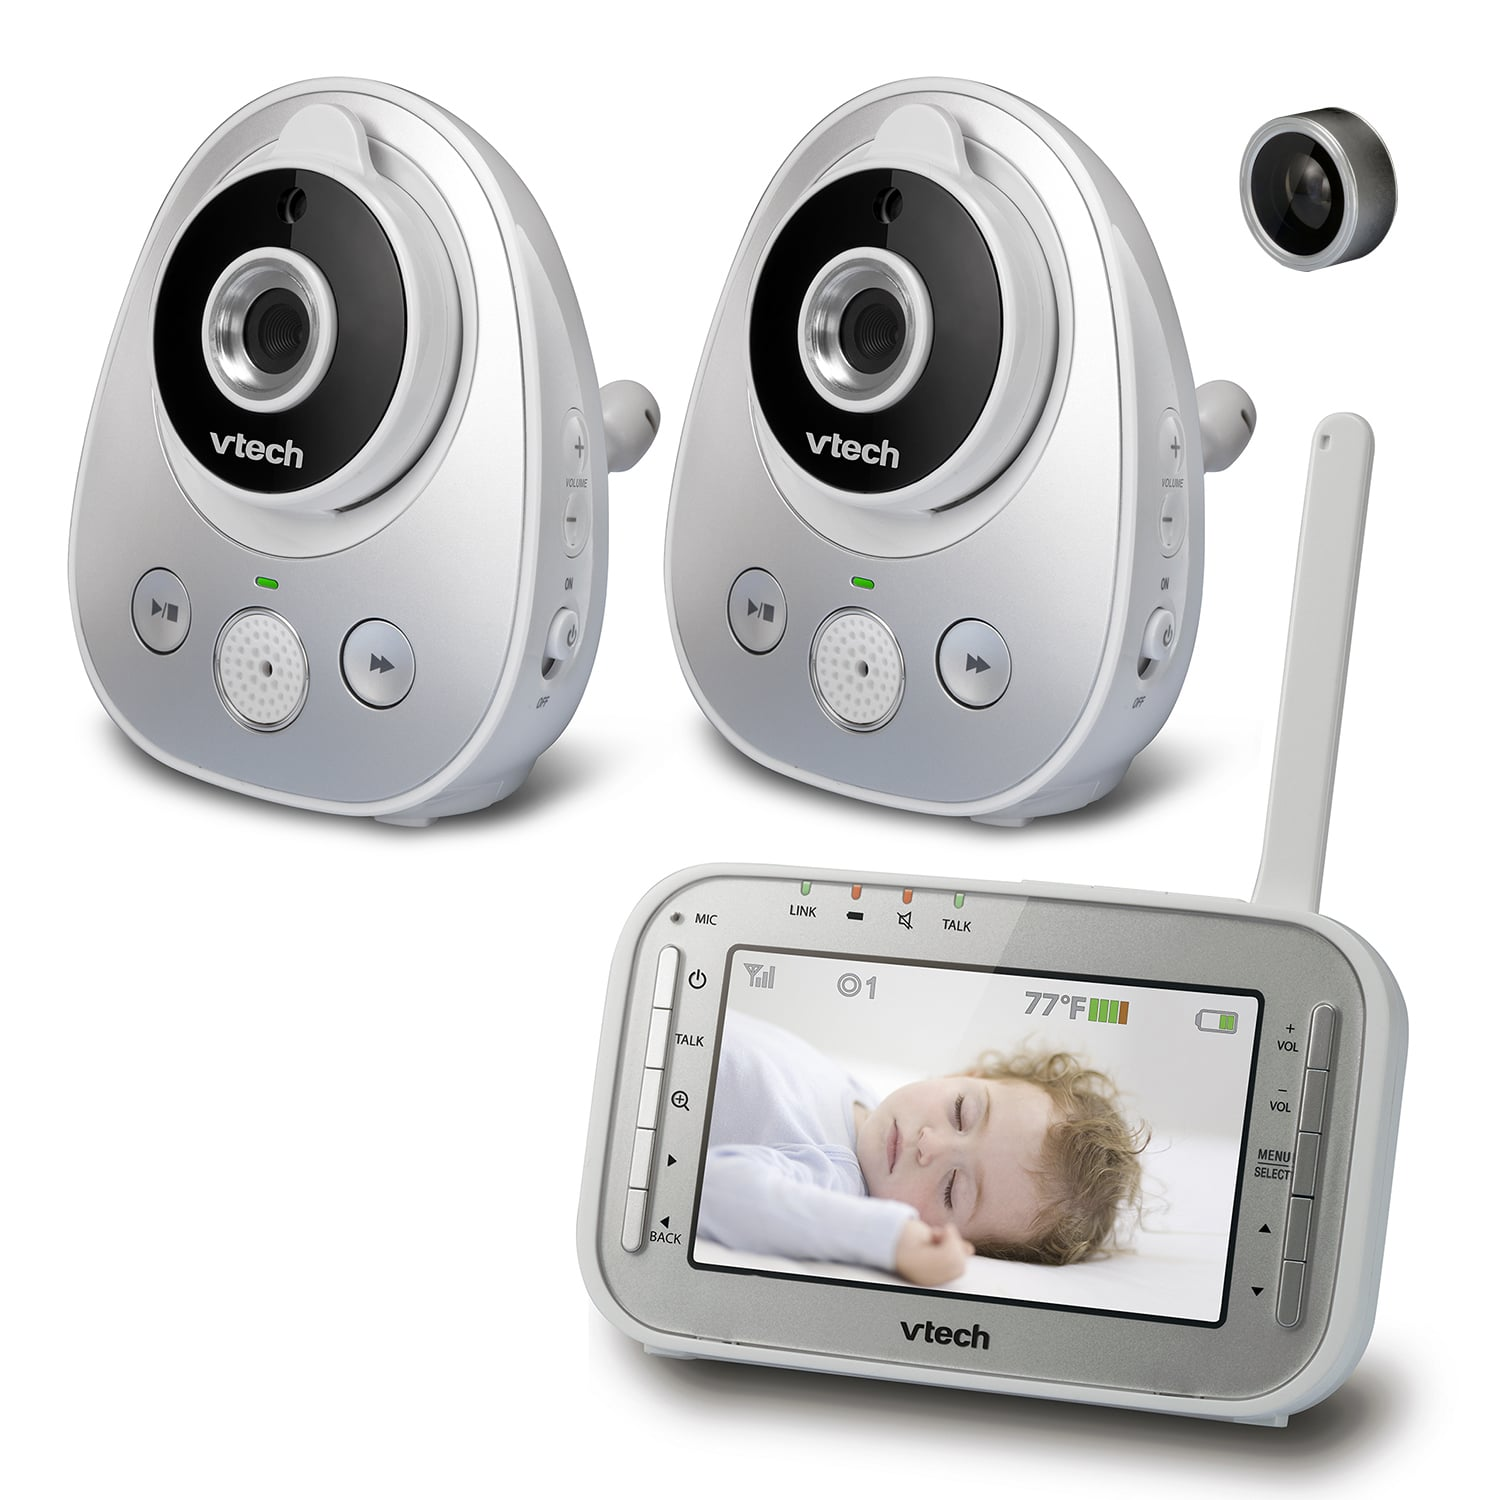 c88fcff8080d4 Baby Monitor - 2 Camera Video Monitor with Wide-Angle Lens and ...